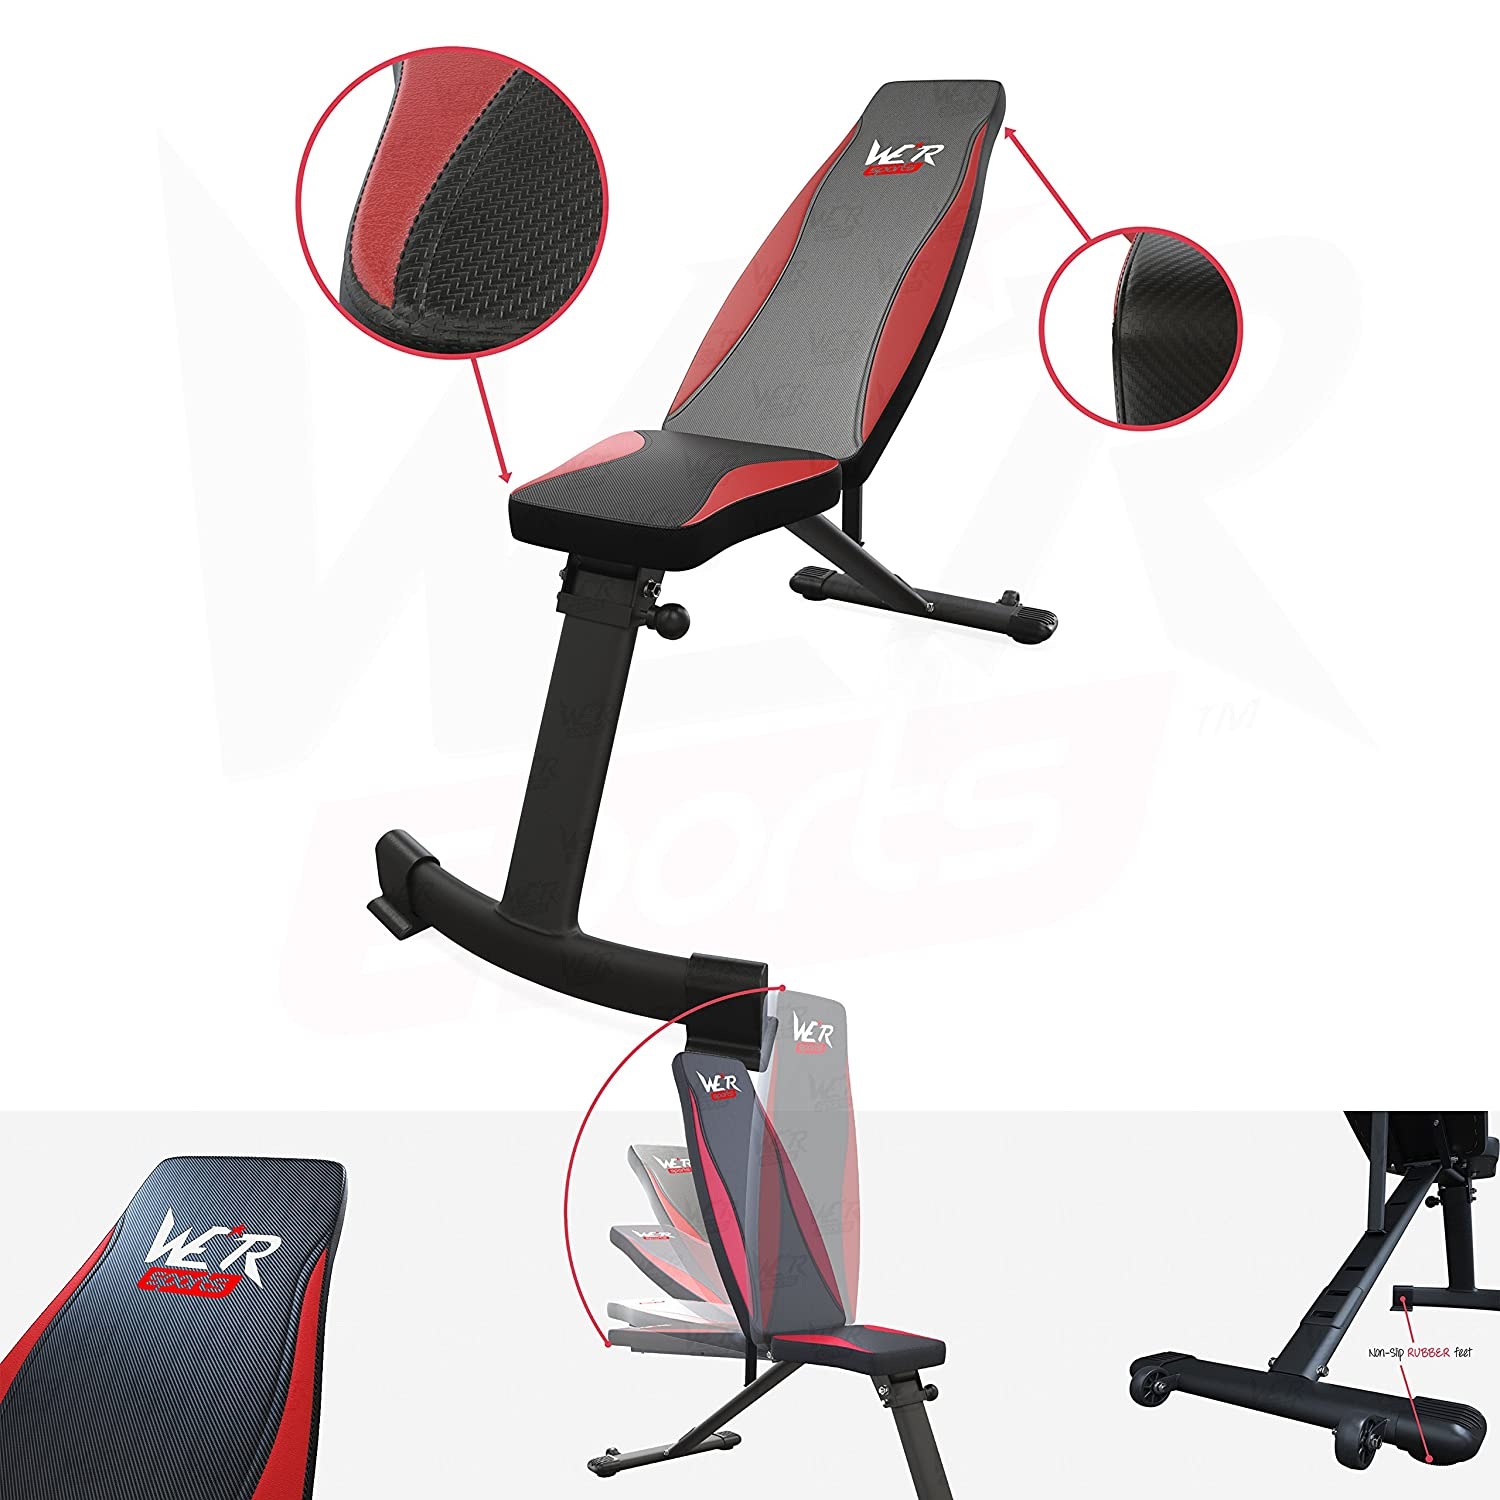 Top 20 Best Adjustable Fitness Weight Benches 2018 2020 On